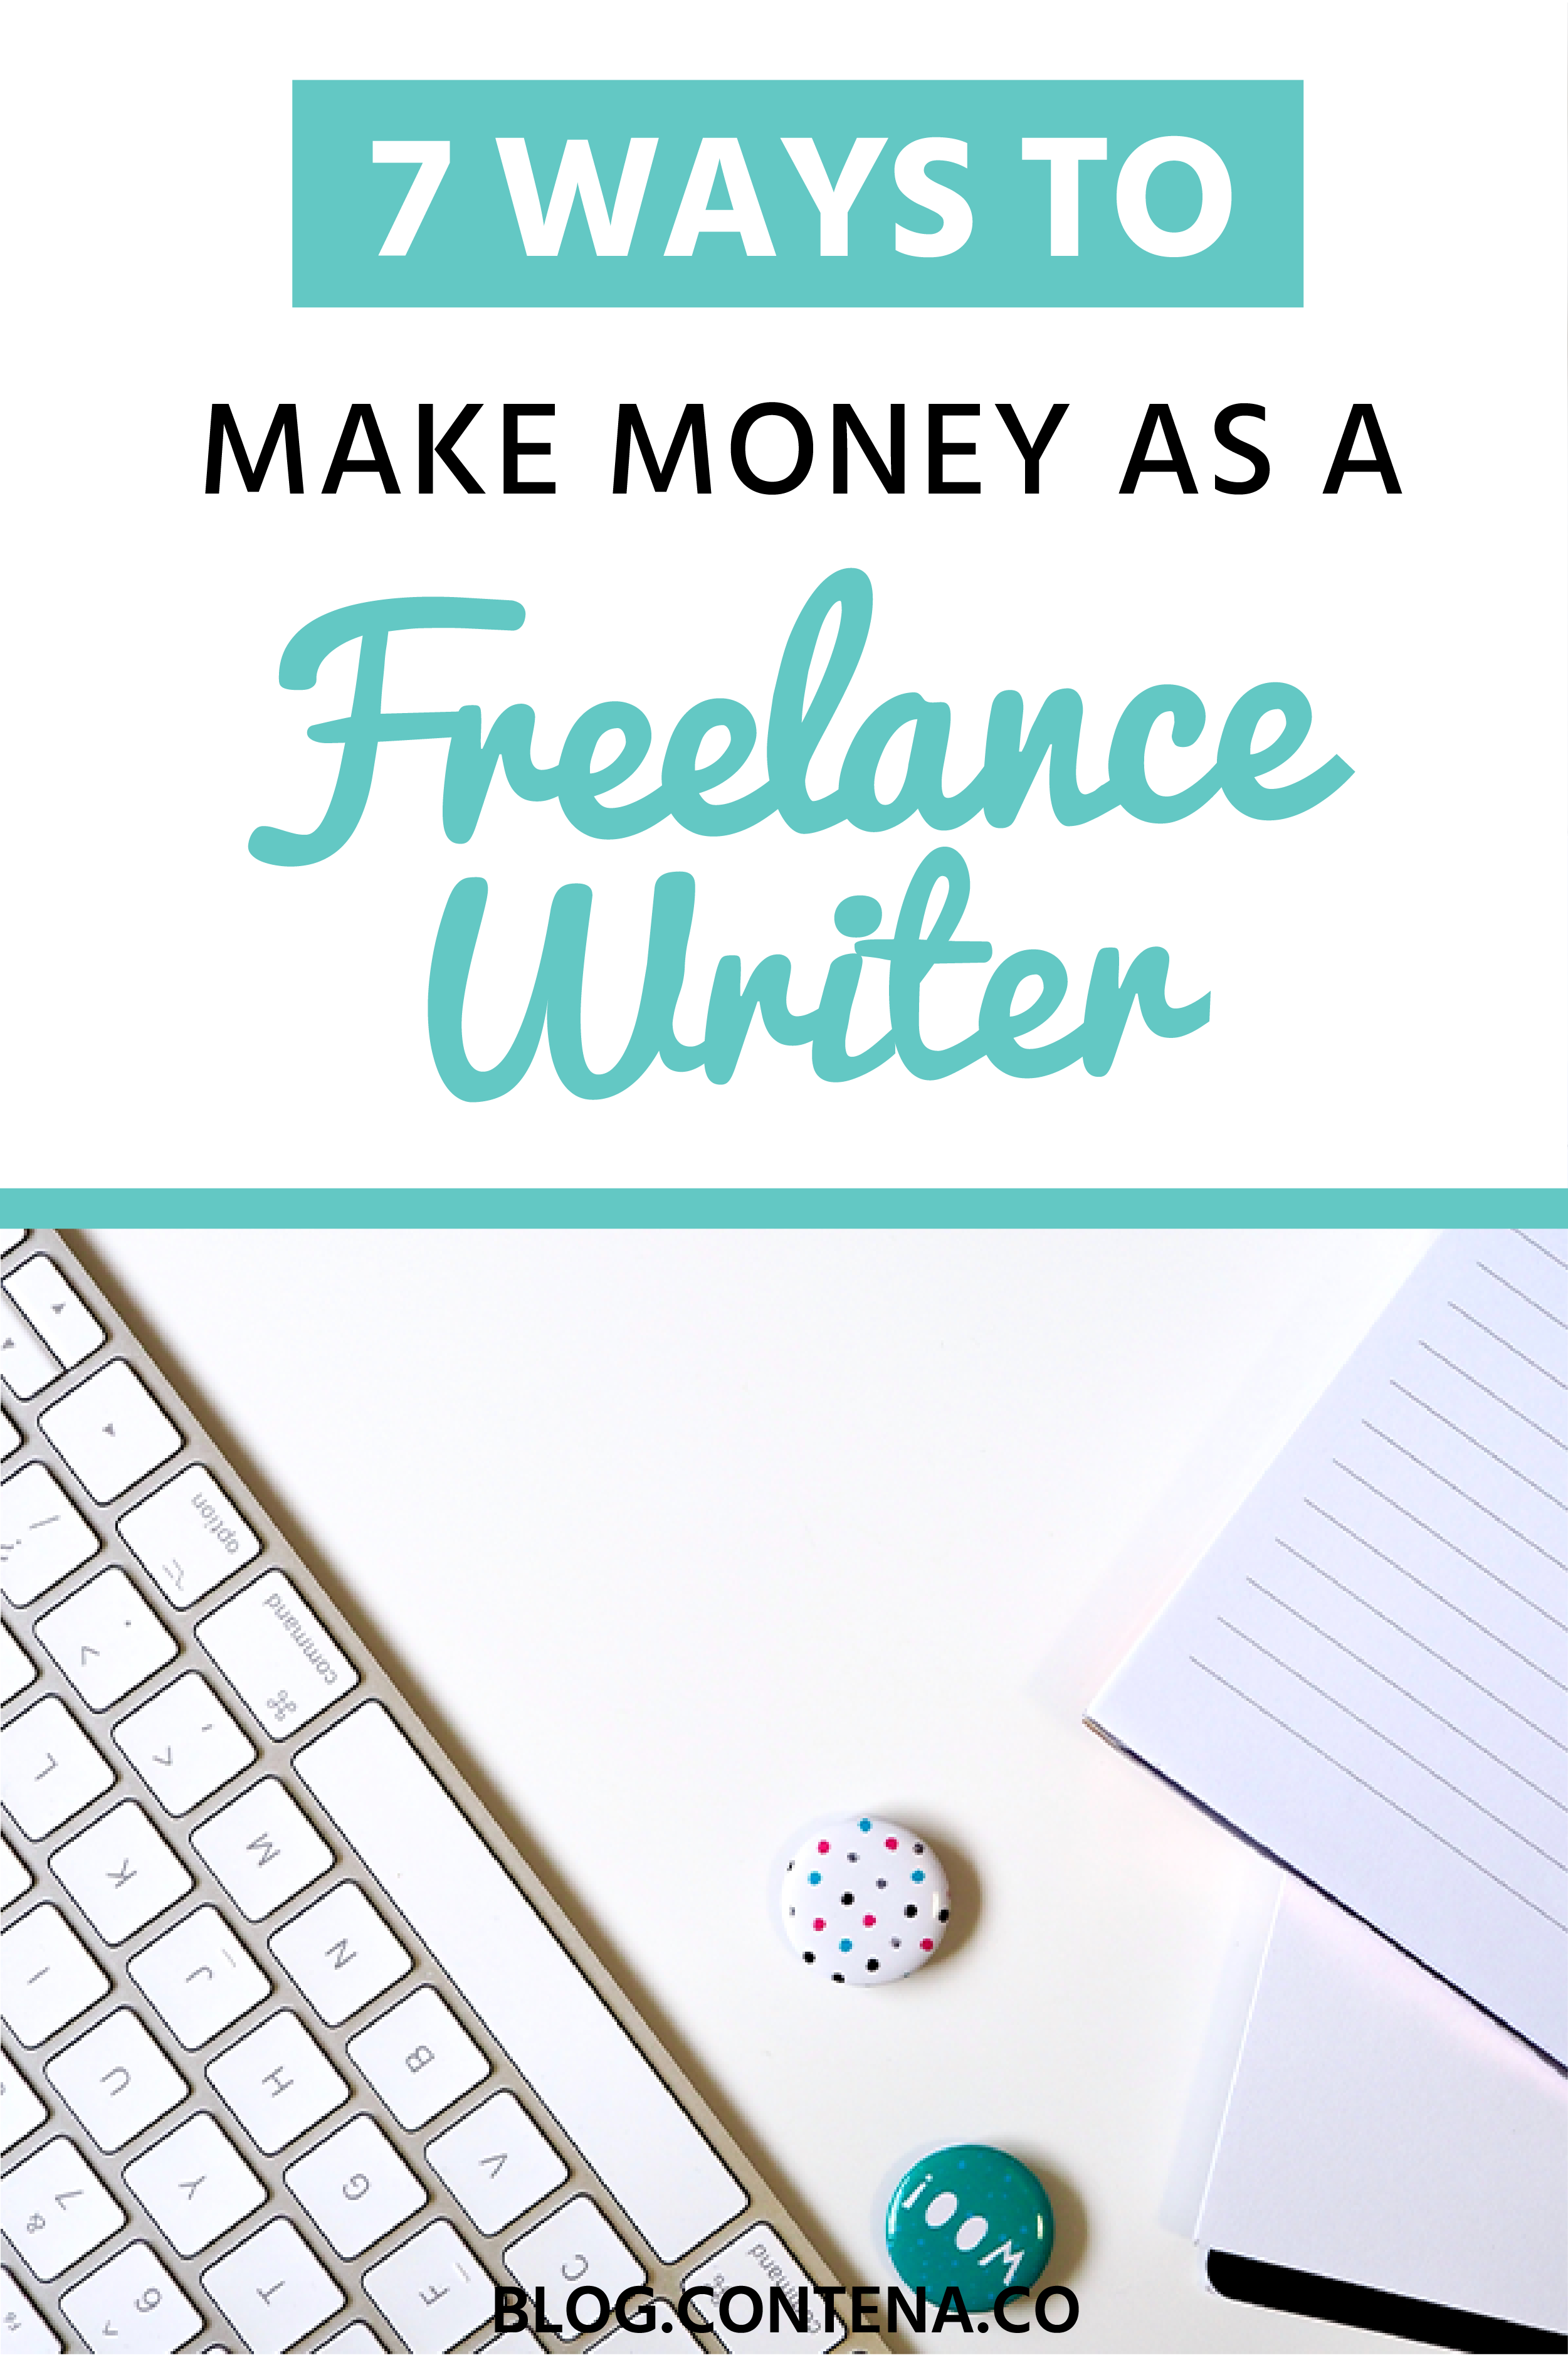 When you're a freelance writer, you can make money doing more than just writing. Check out these side hustles and other ways to make money working from home; you'll get ideas for other ways to bring in income other than freelance writing. #FreelanceWriting #OnlineBusiness #Freelancing #WorkFromHome #RemoteWork #Money #FreelanceWriter #SideHustle